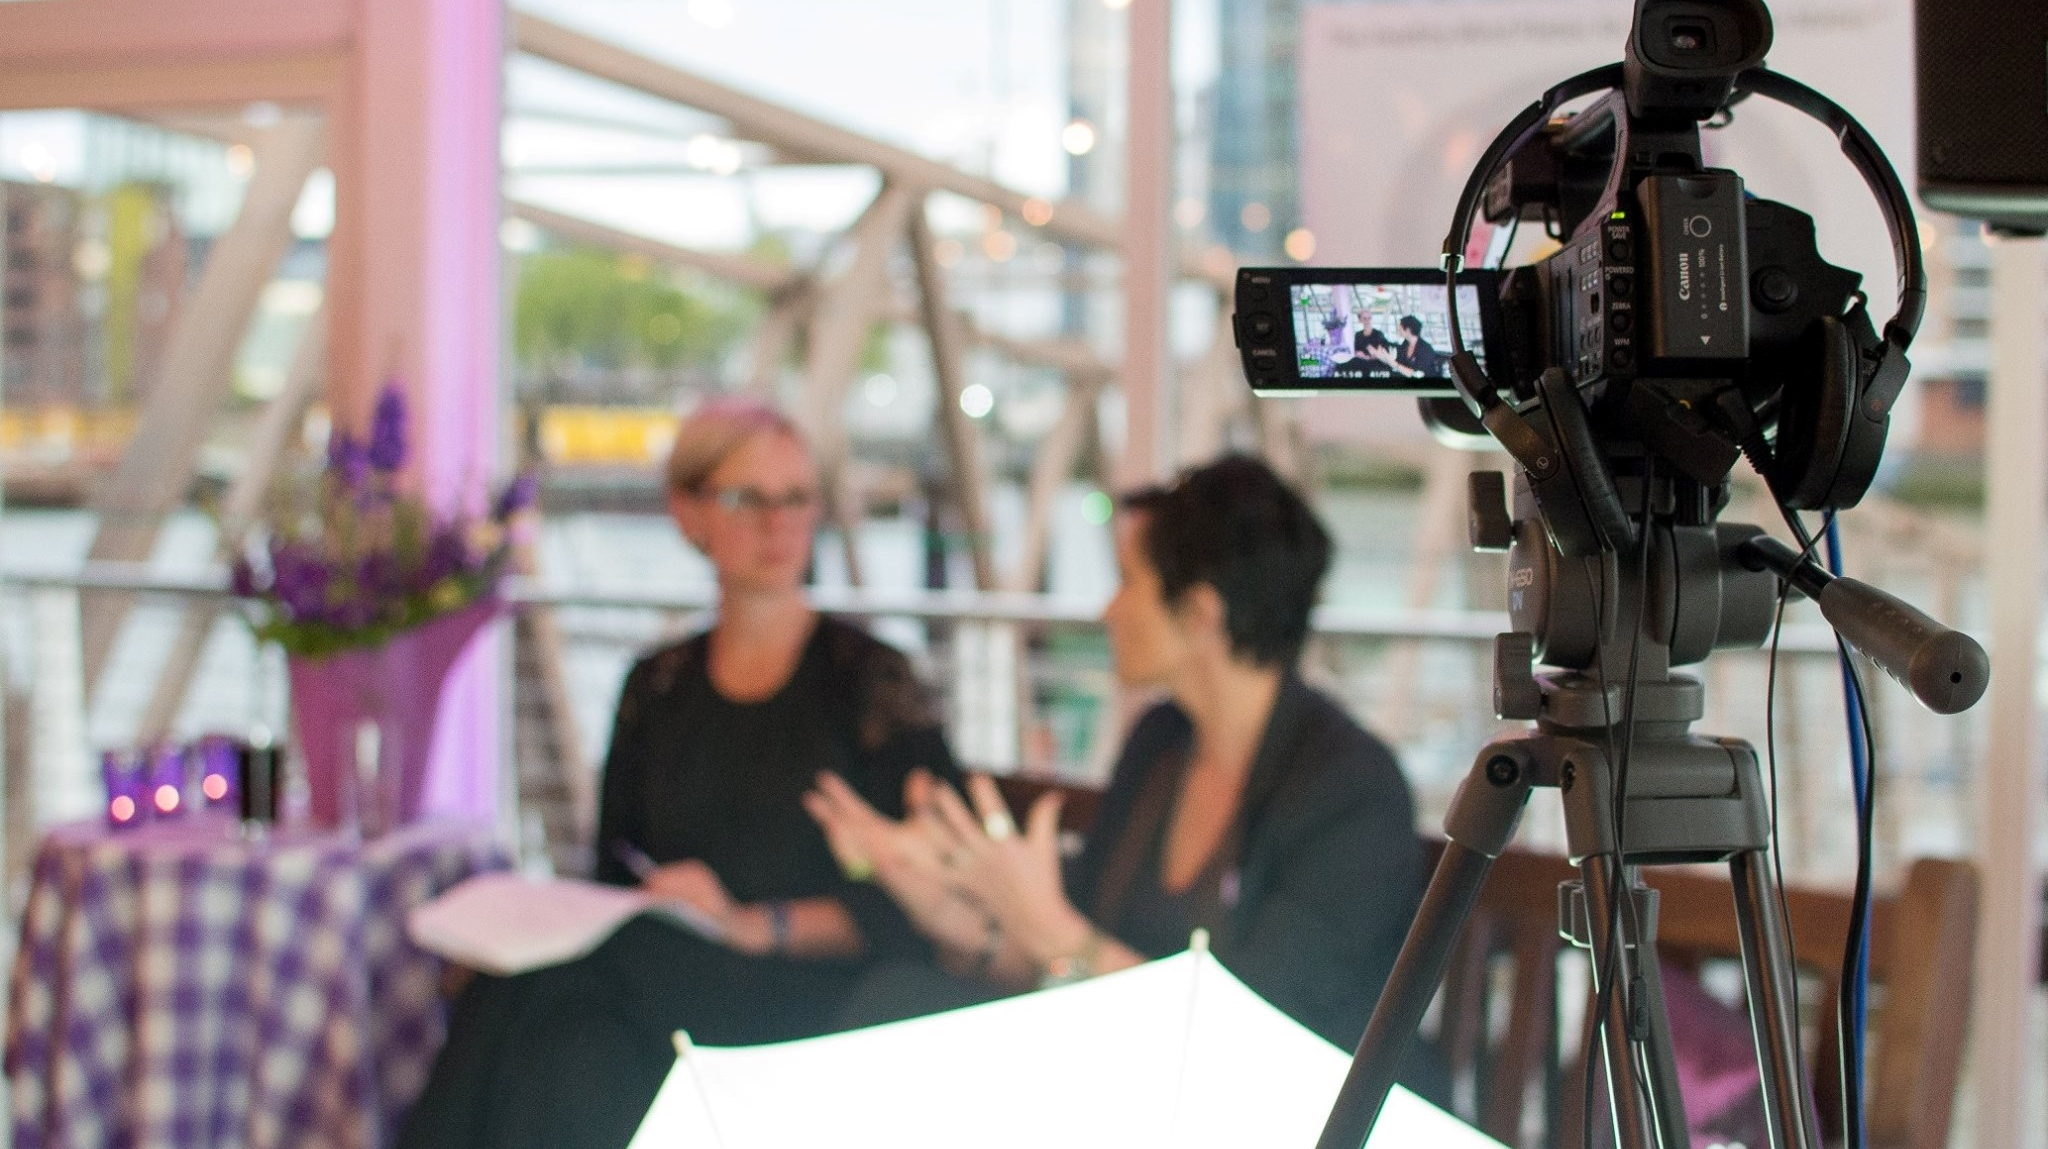 Annemie Ress talking to Tanya Byron at PurpleBeach London Experience 2016